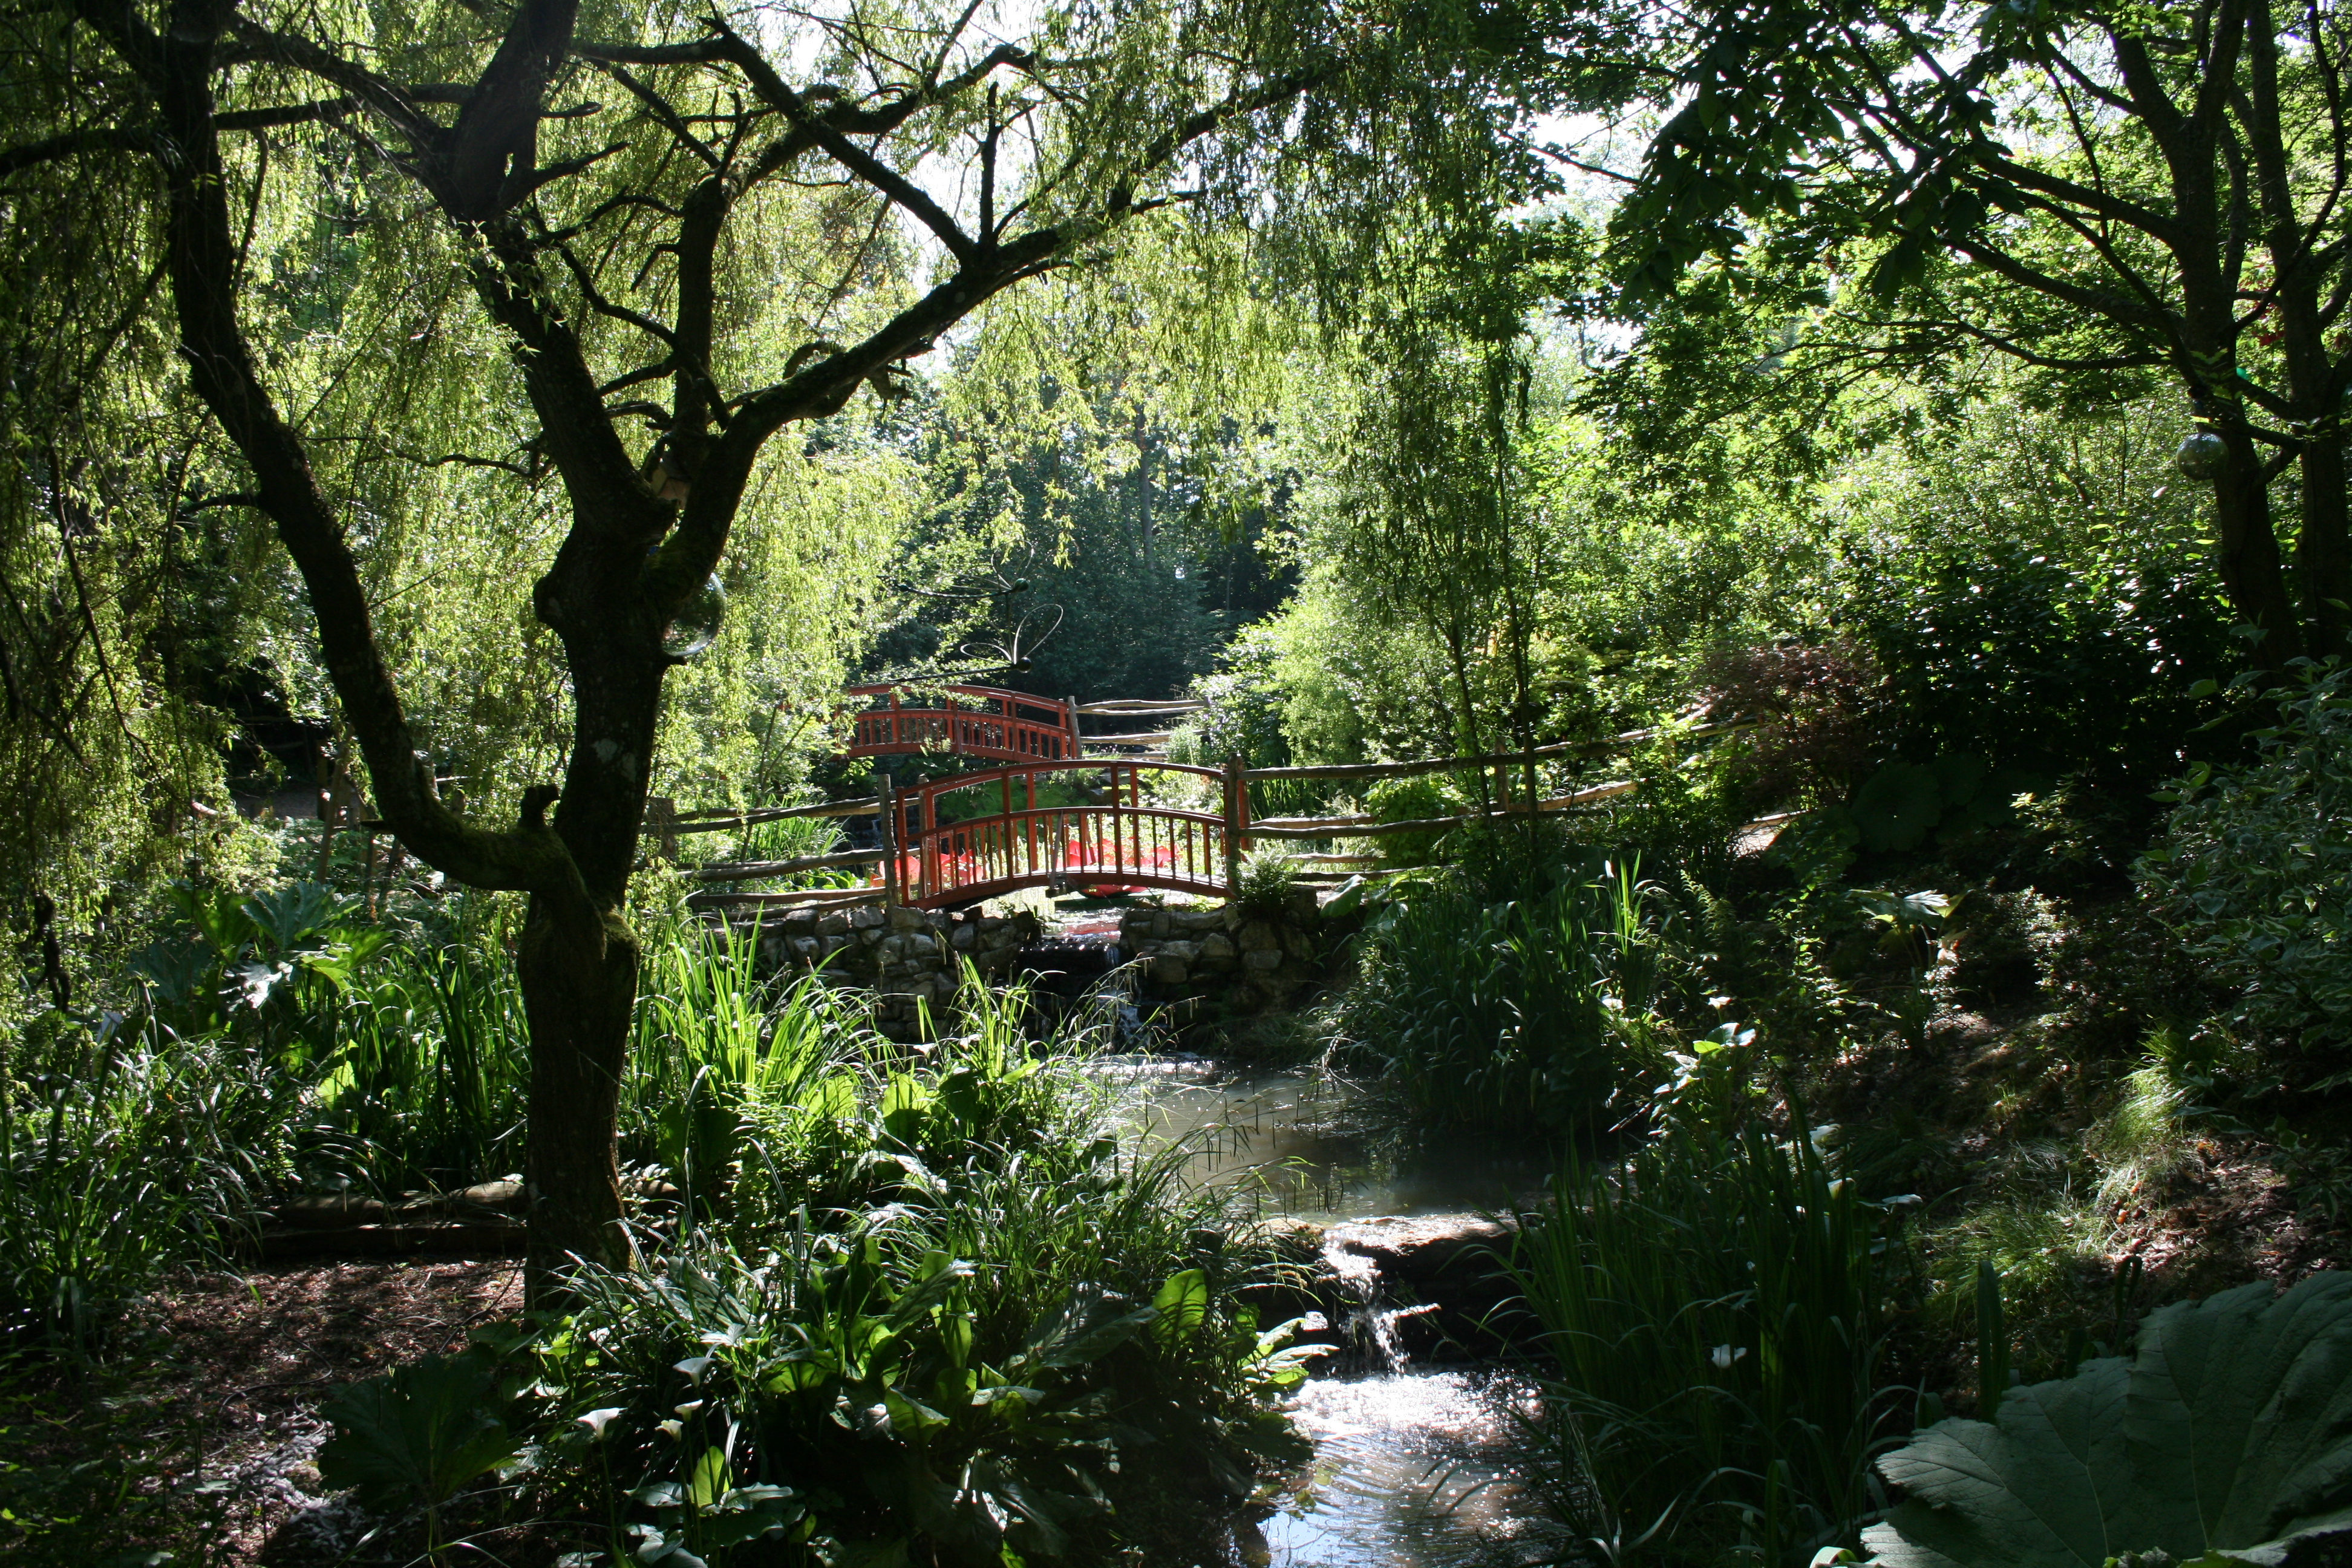 Japanese garden at Robin Hill Country Park on the Isle of Wight